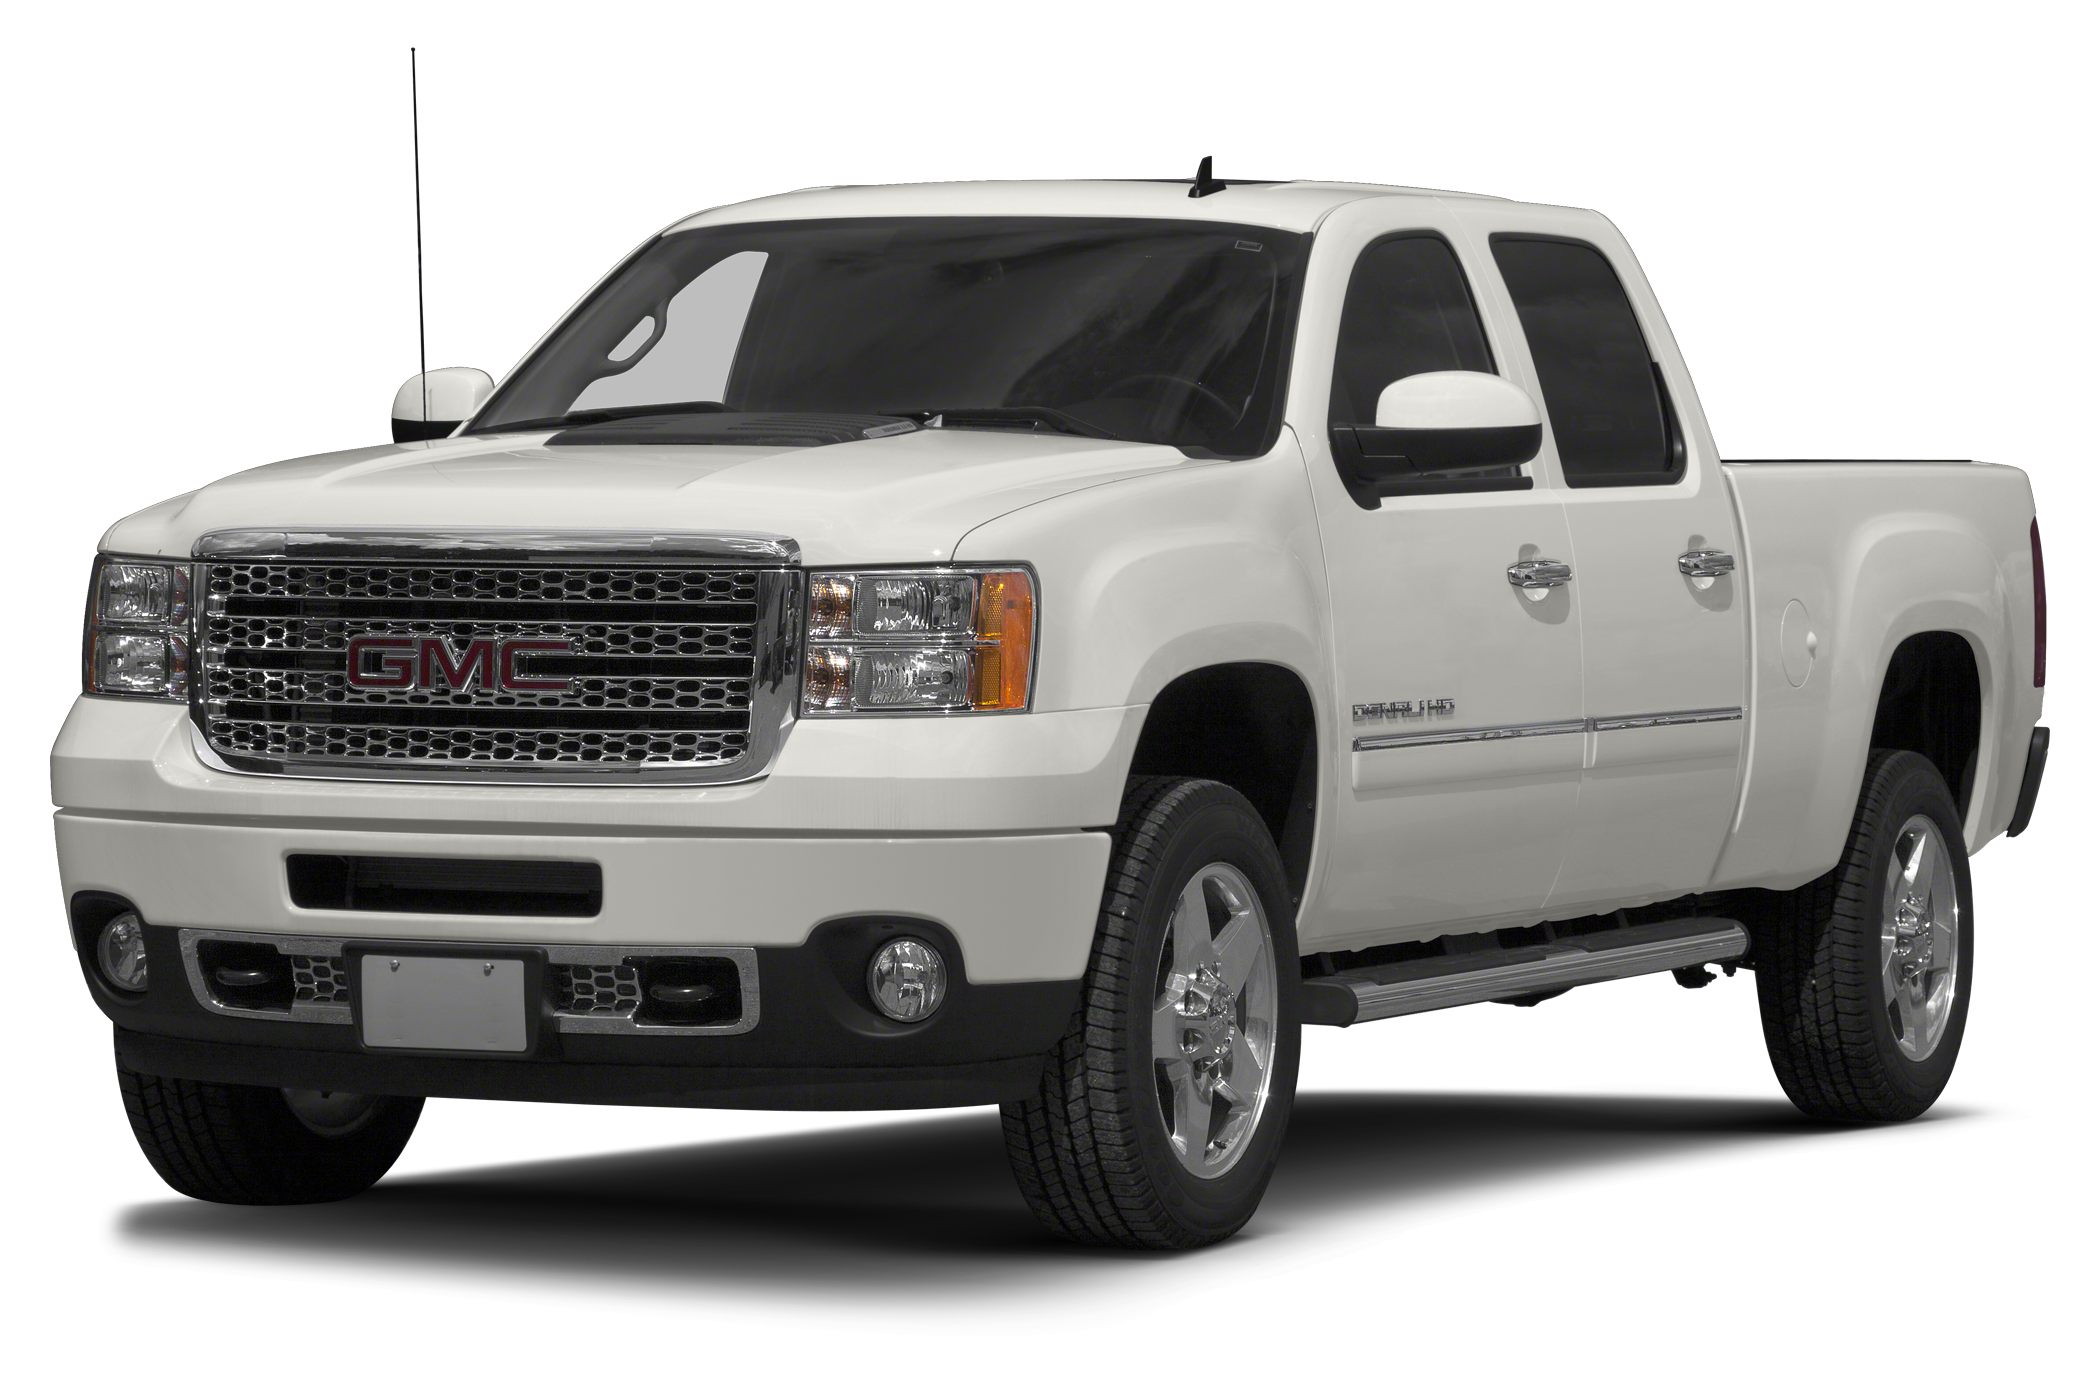 2014 GMC Sierra 2500 Denali Crew Cab Pickup for sale in New Braunfels for $50,995 with 19,892 miles.